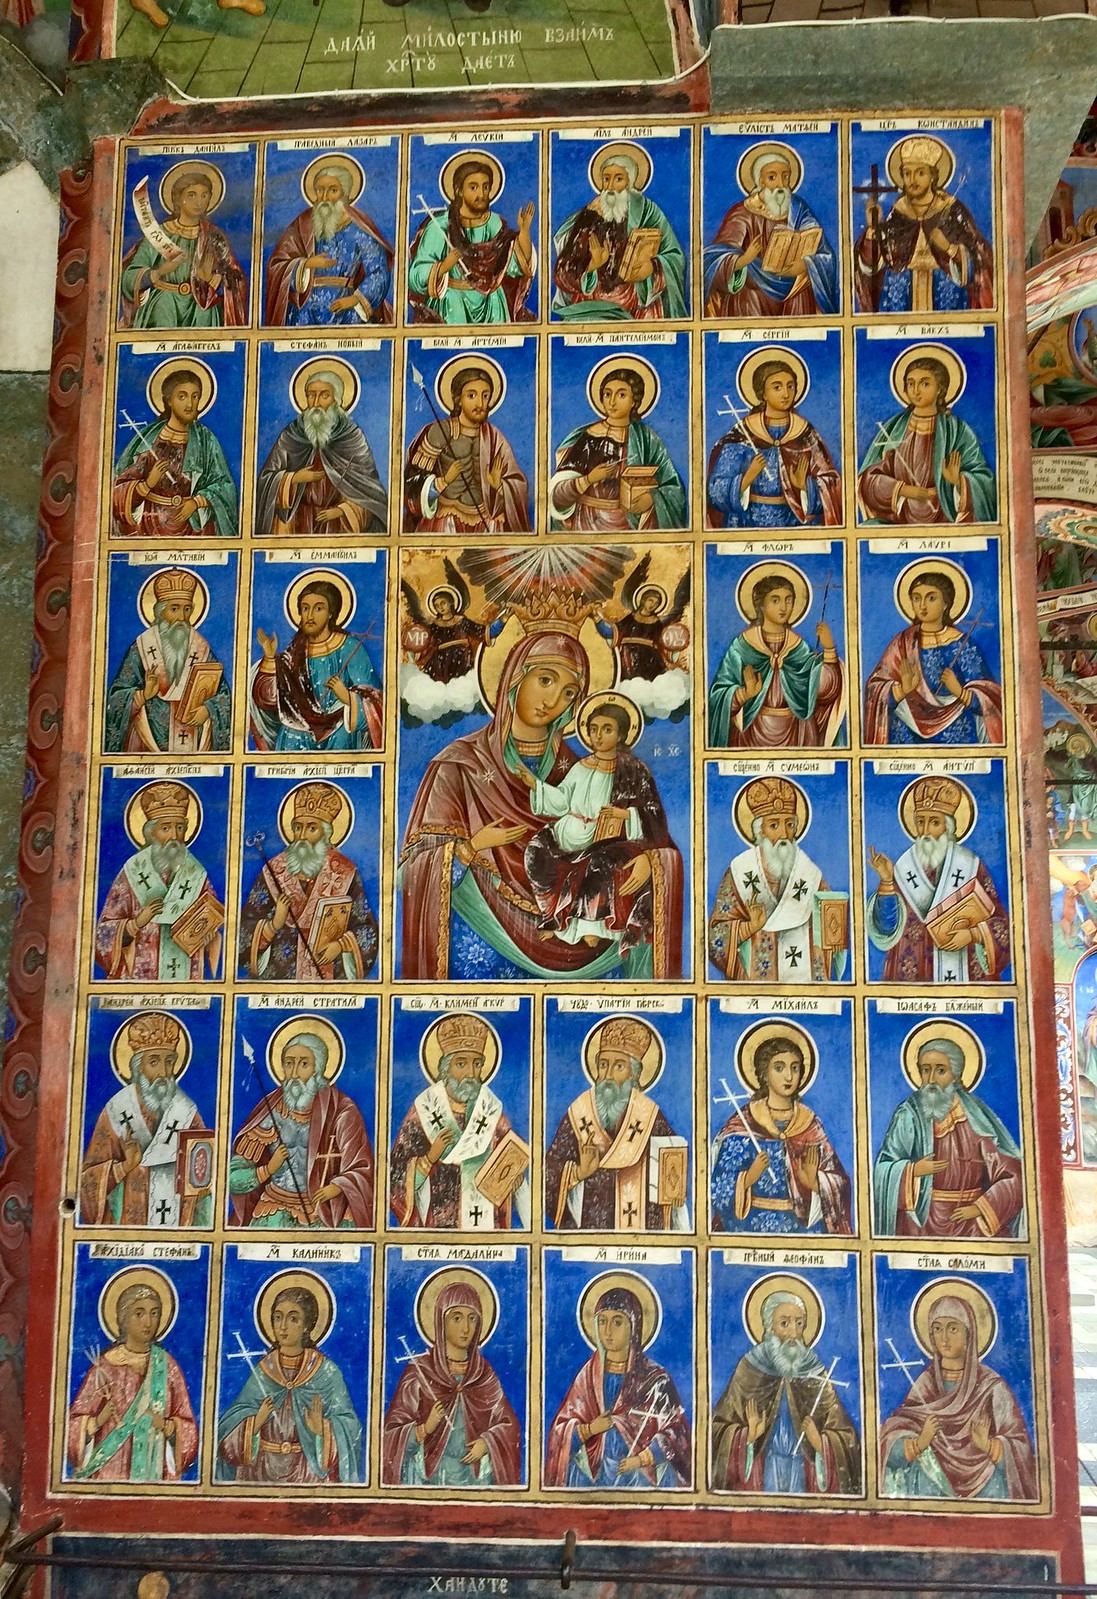 201705 - Balkans - Saints - 45 of 101 - Rila Monastery - Rilski manastir, May 26, 2017